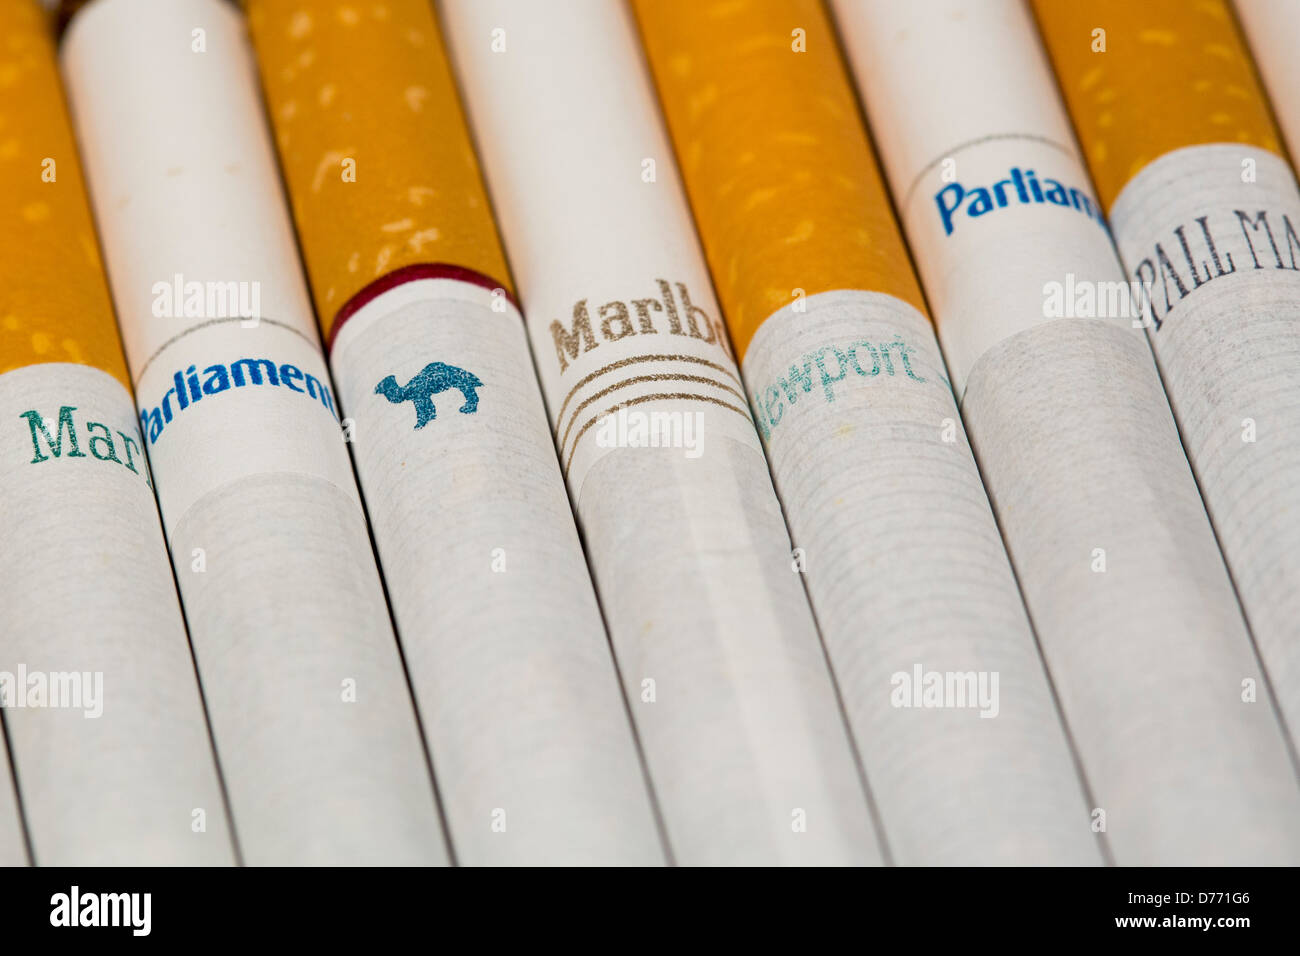 Marlboro cigarettes cheapest